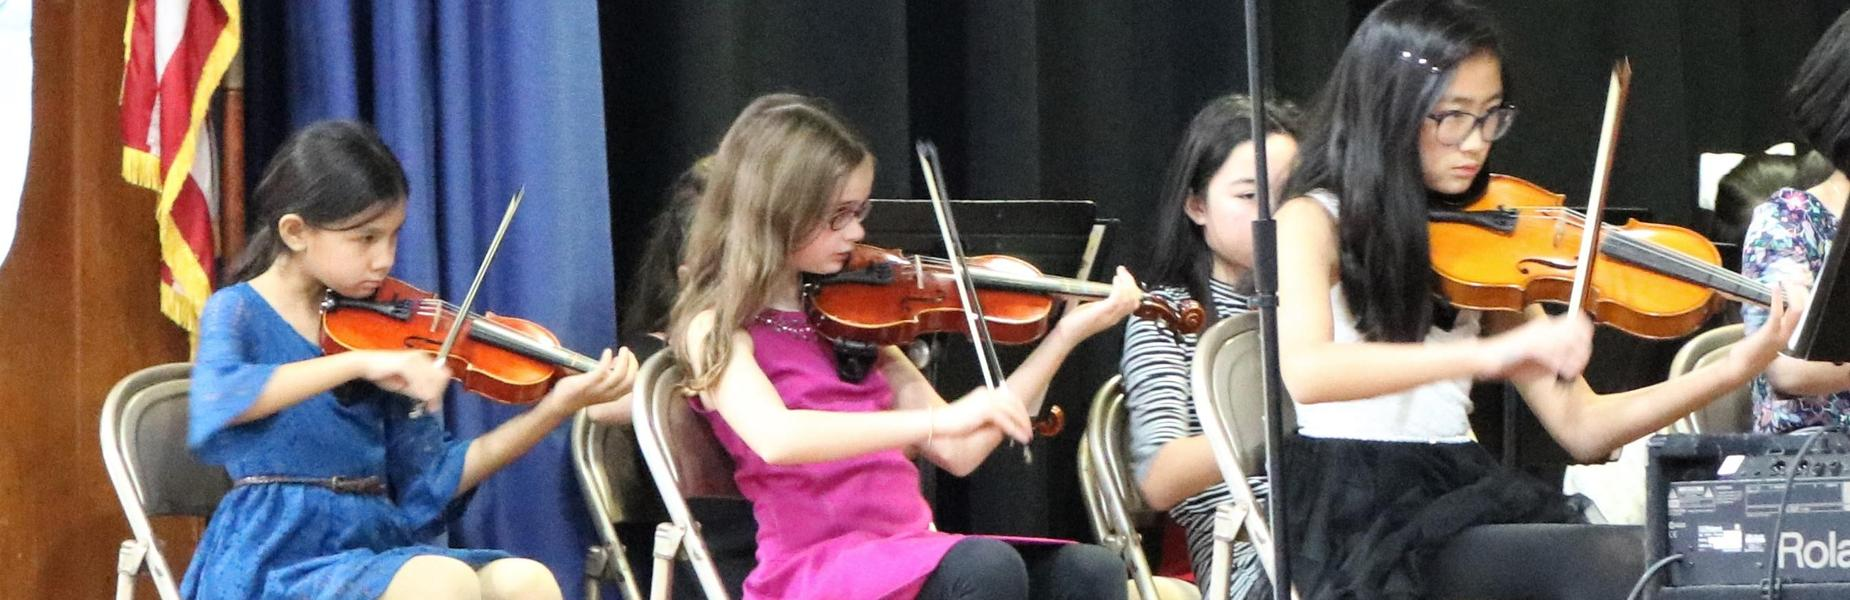 Elementary students perform holiday String Concert at Tamaques School in December 2018.  Pictured here are three young violinists.